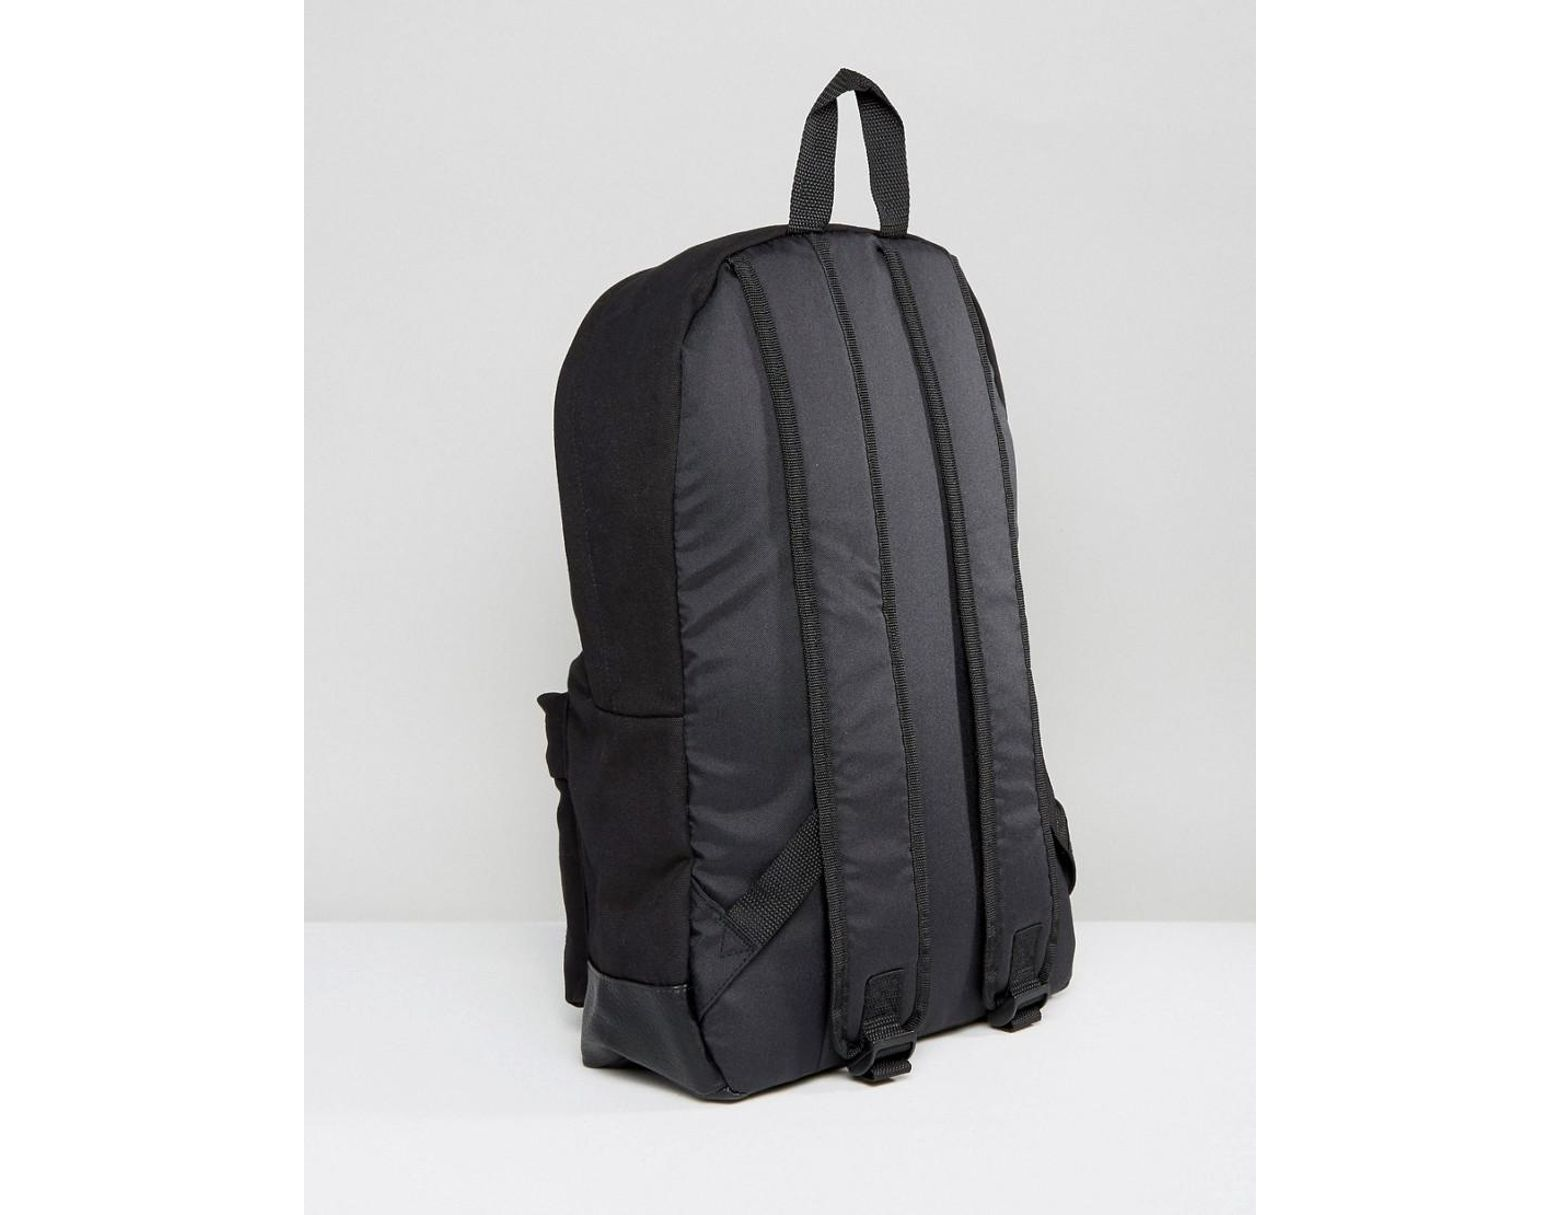 b36b5c4c581 ASOS Backpack In Black Canvas With Faux Leather Base in Black for Men - Lyst